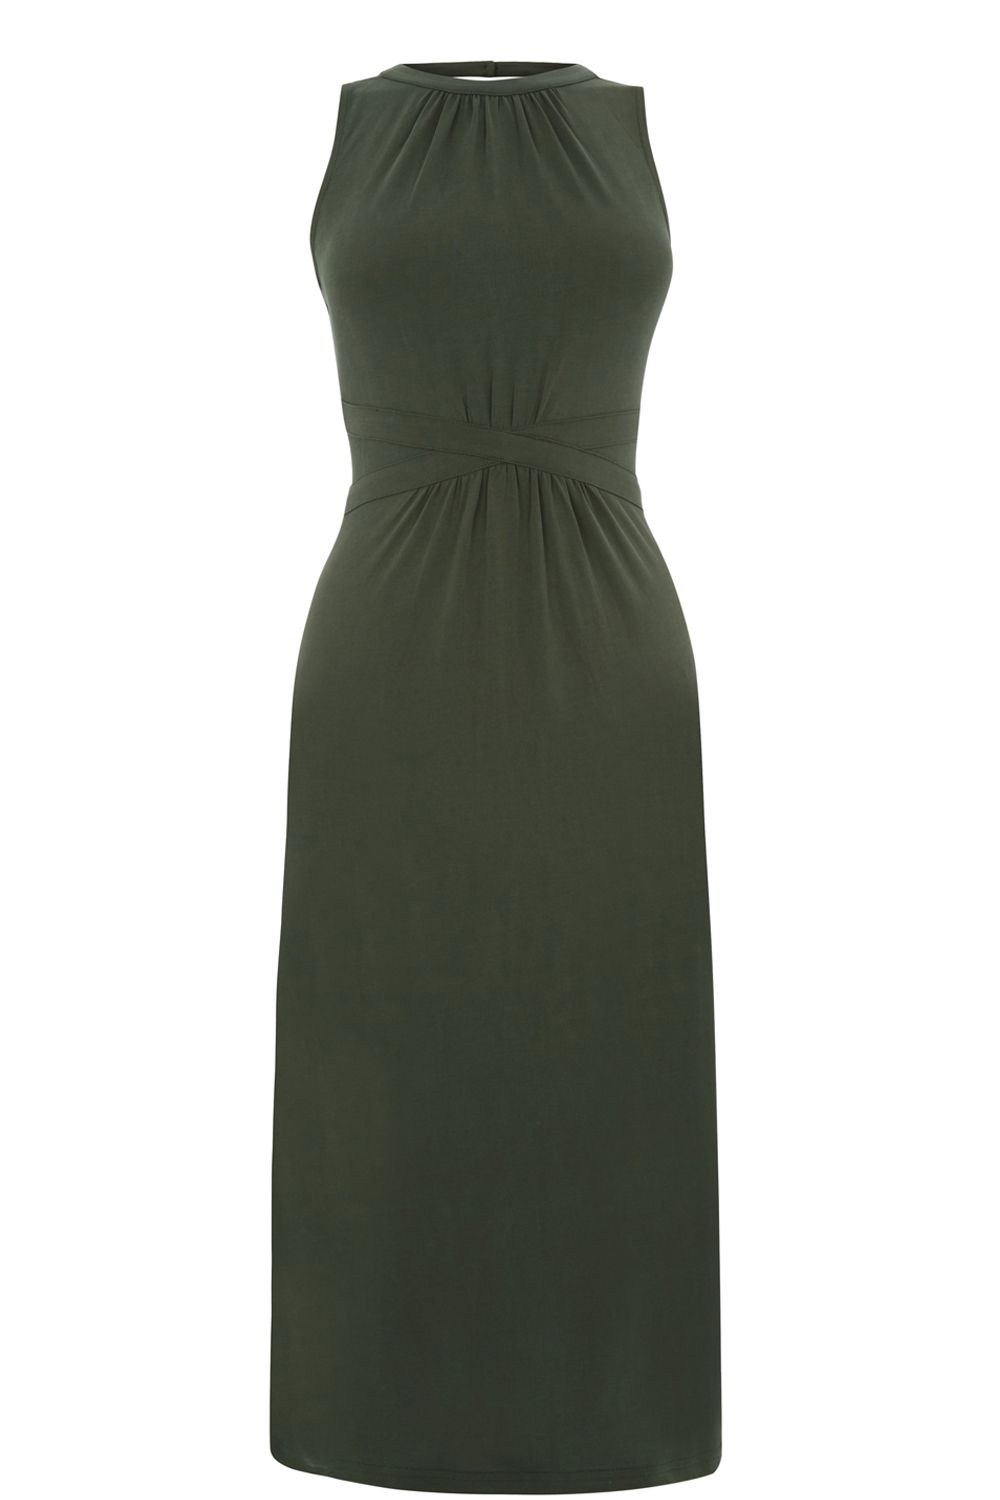 Oasis Grecian Midi Dress, Khaki